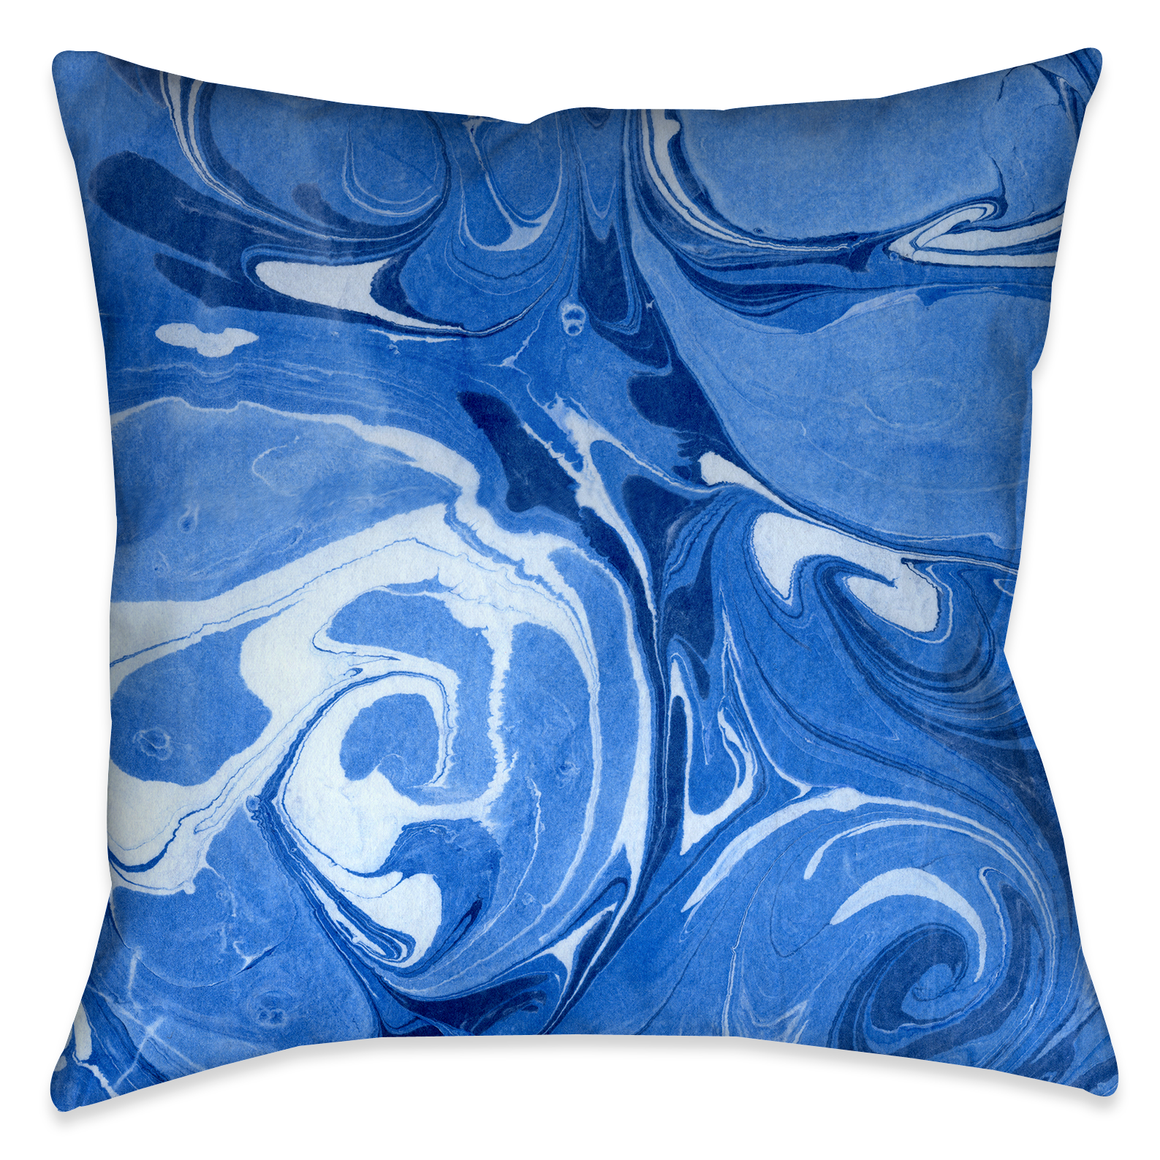 Ocean Blue II Marble Outdoor Decorative Pillow